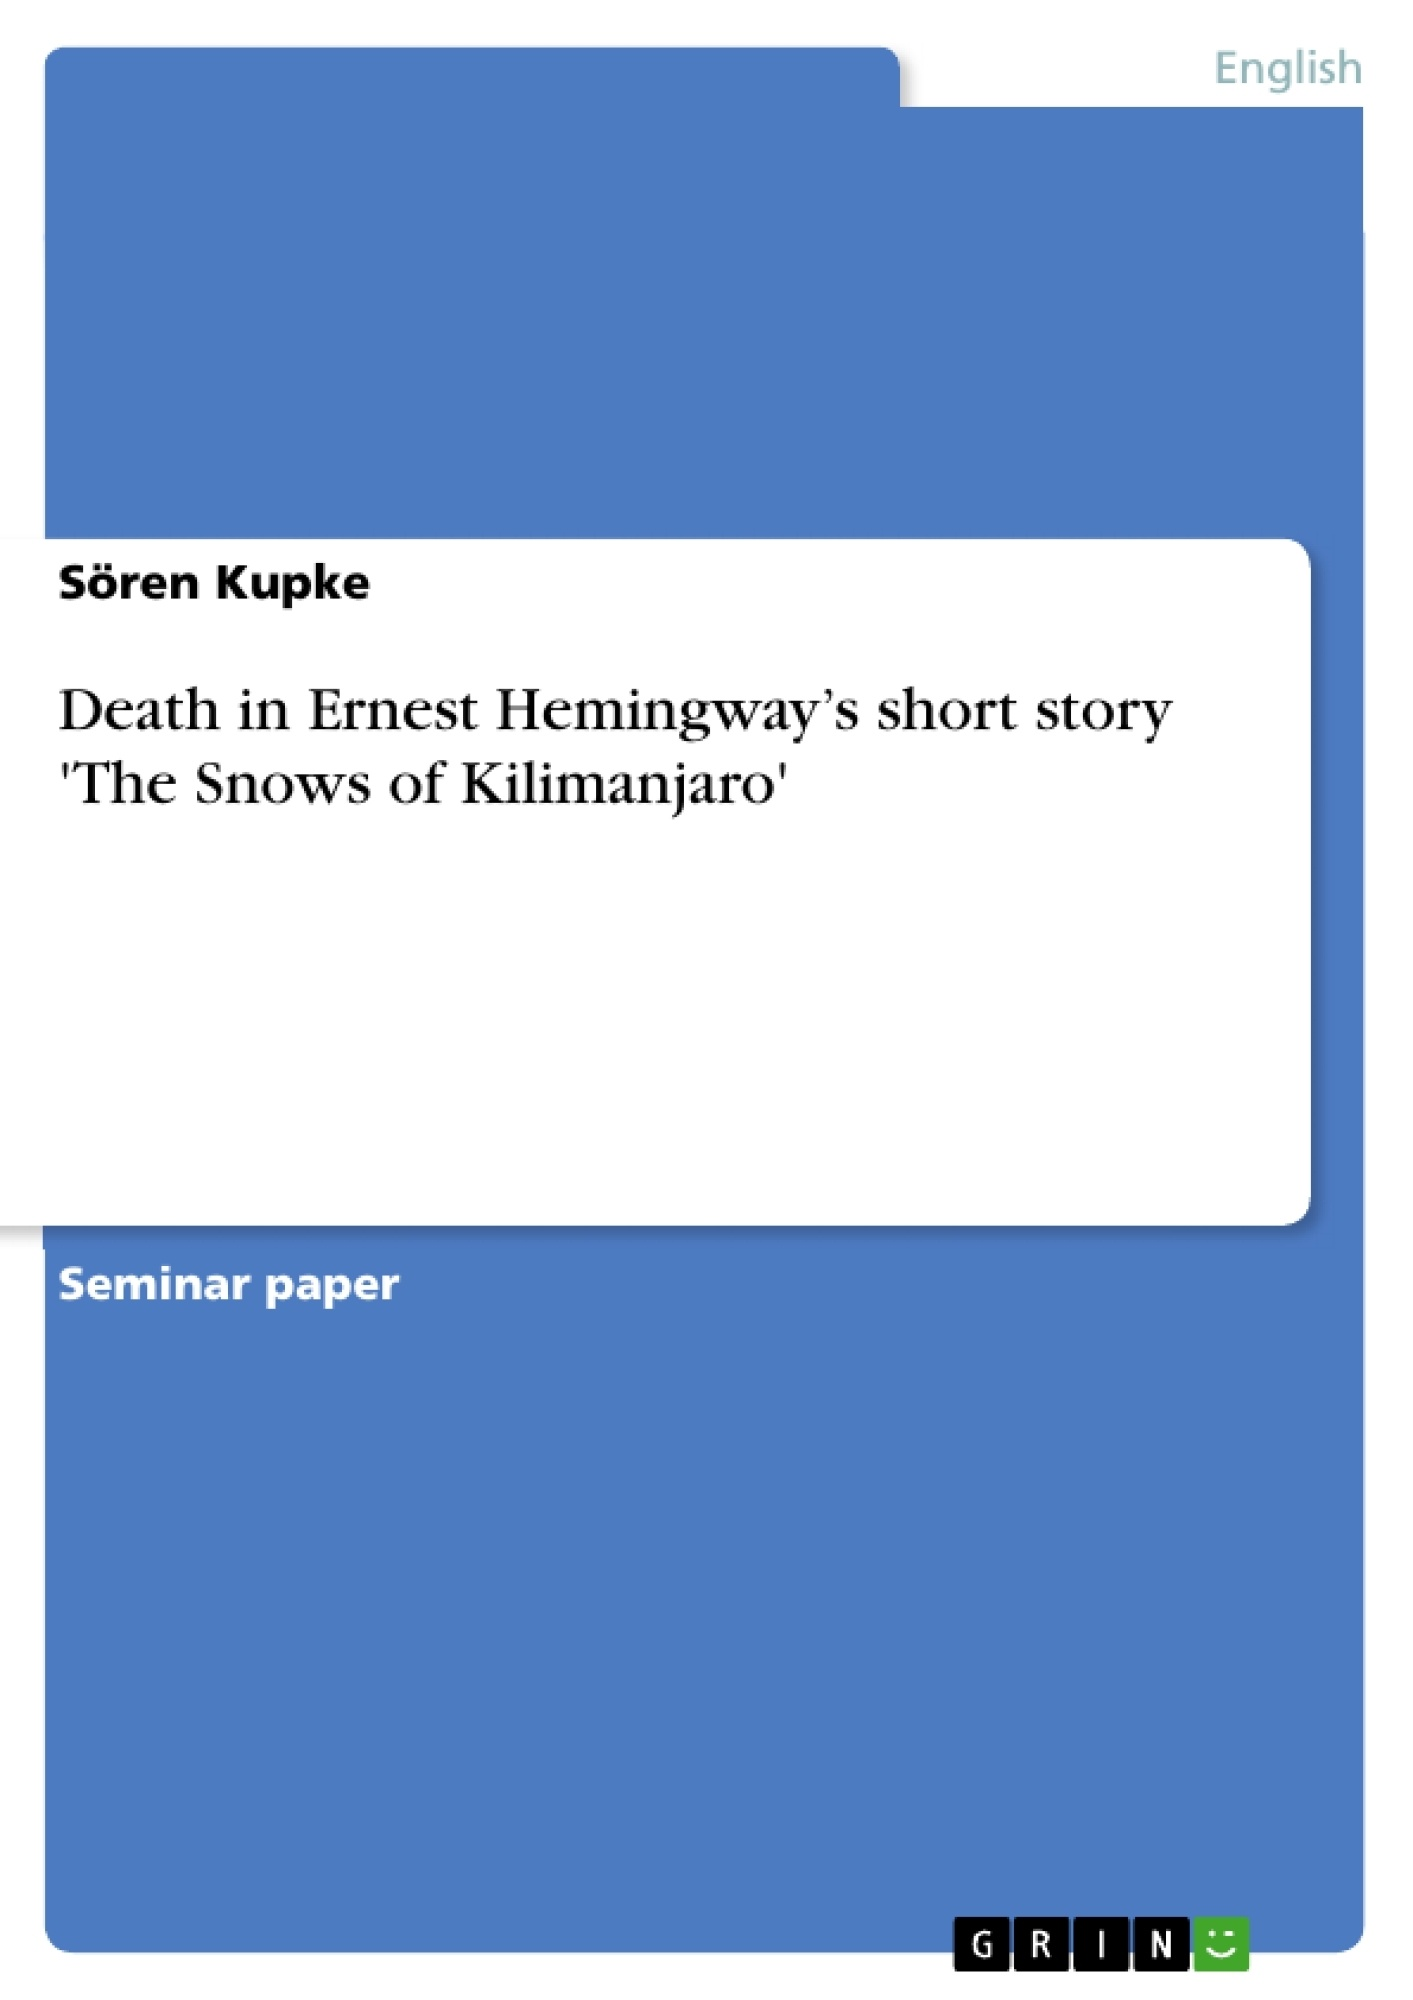 death in ernest hemingway s short story the snows of kilimanjaro death in ernest hemingway s short story the snows of kilimanjaro publish your master s thesis bachelor s thesis essay or term paper